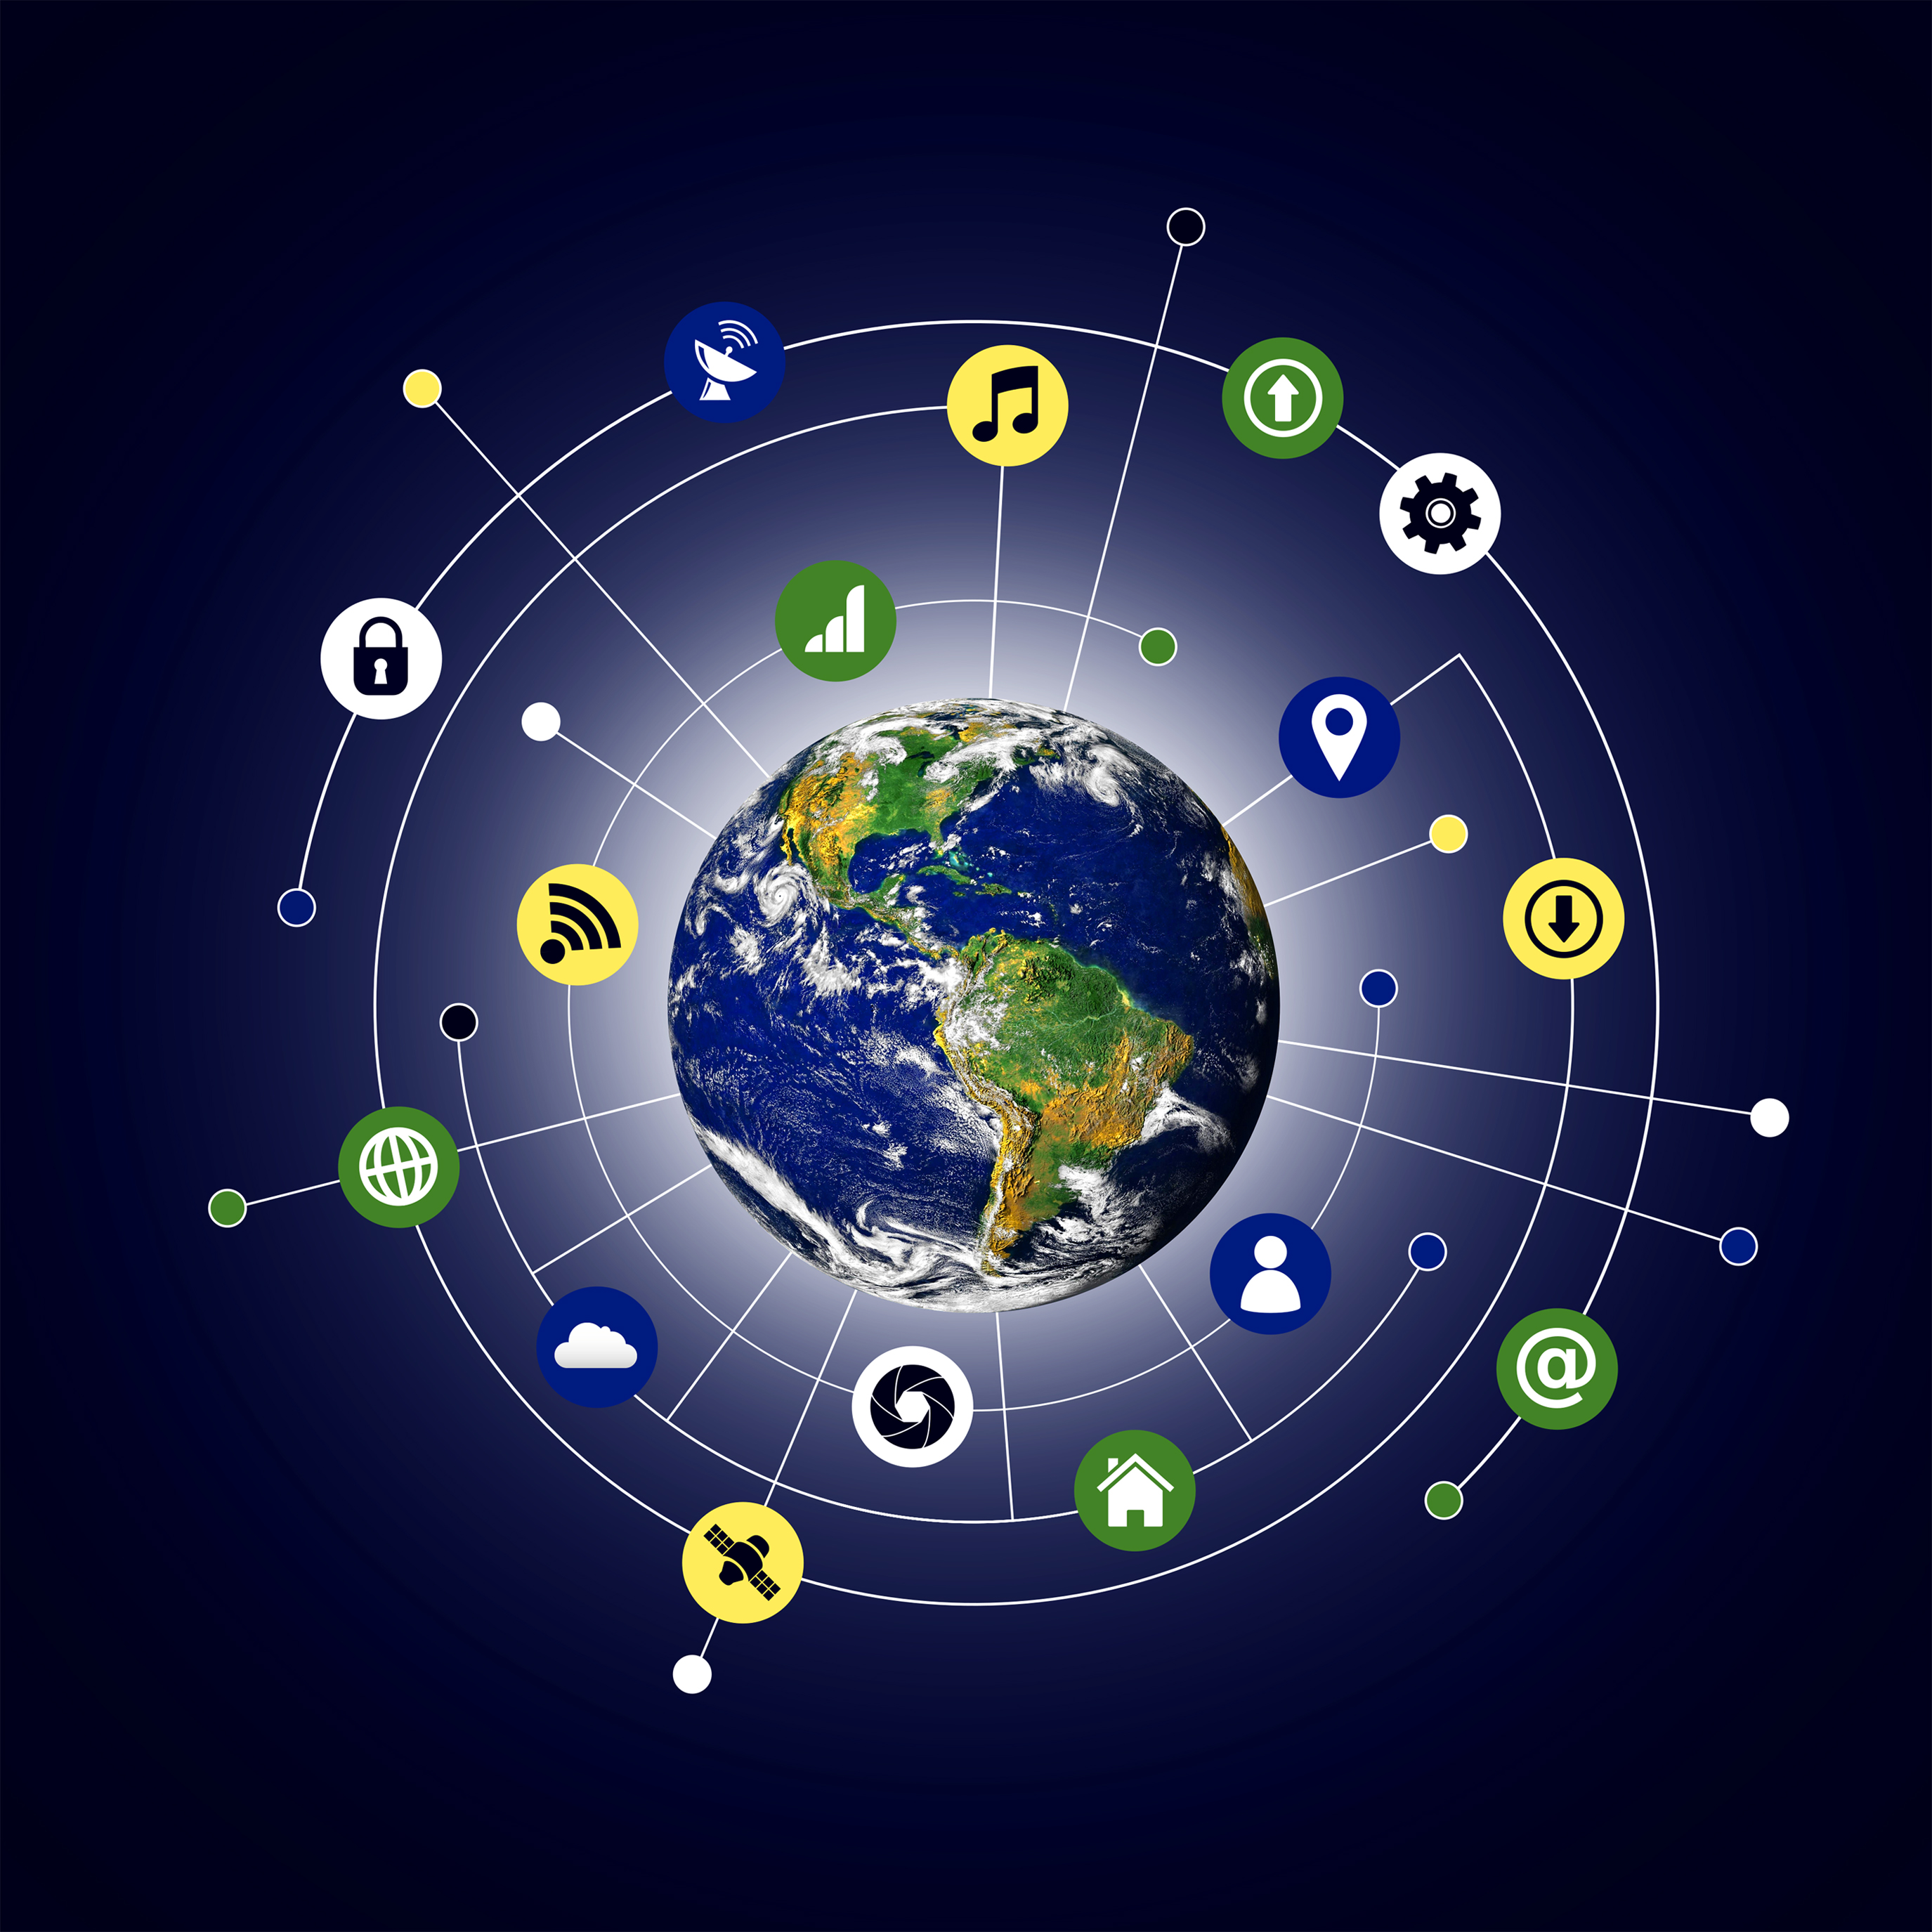 Internet of things concept - globalized interconnected world photo